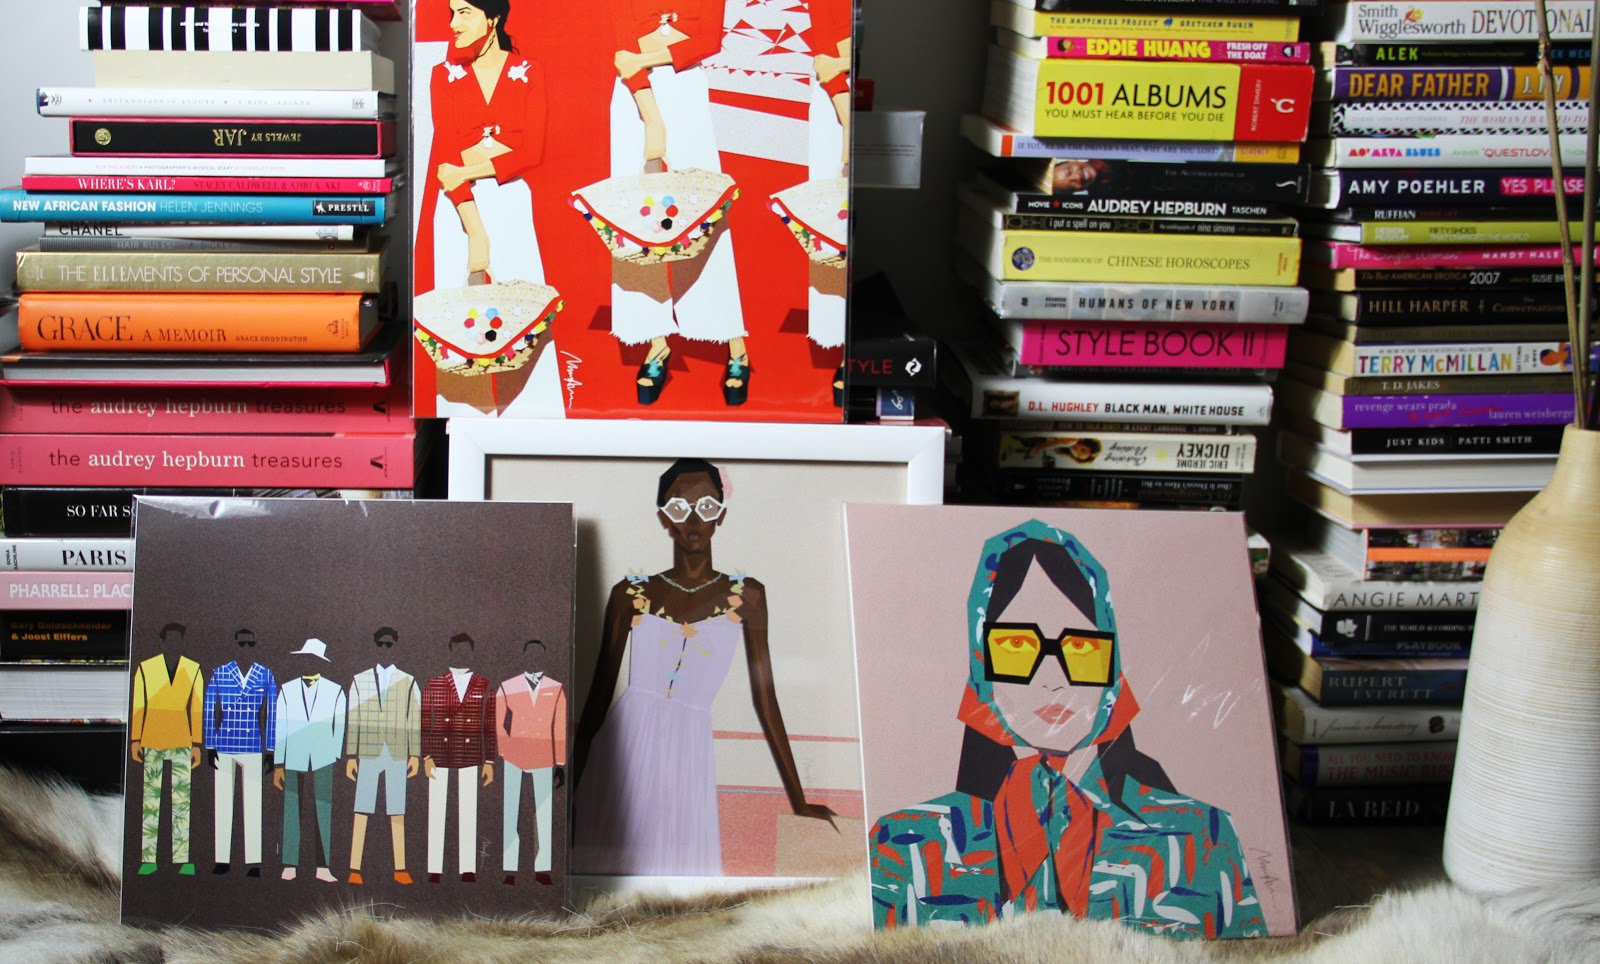 RT @shopellevie: Art  lovers, stock up on these amazing pieces by @mahanonu. https://t.co/eF3JKd46y1 https://t.co/p1t0LMQCig